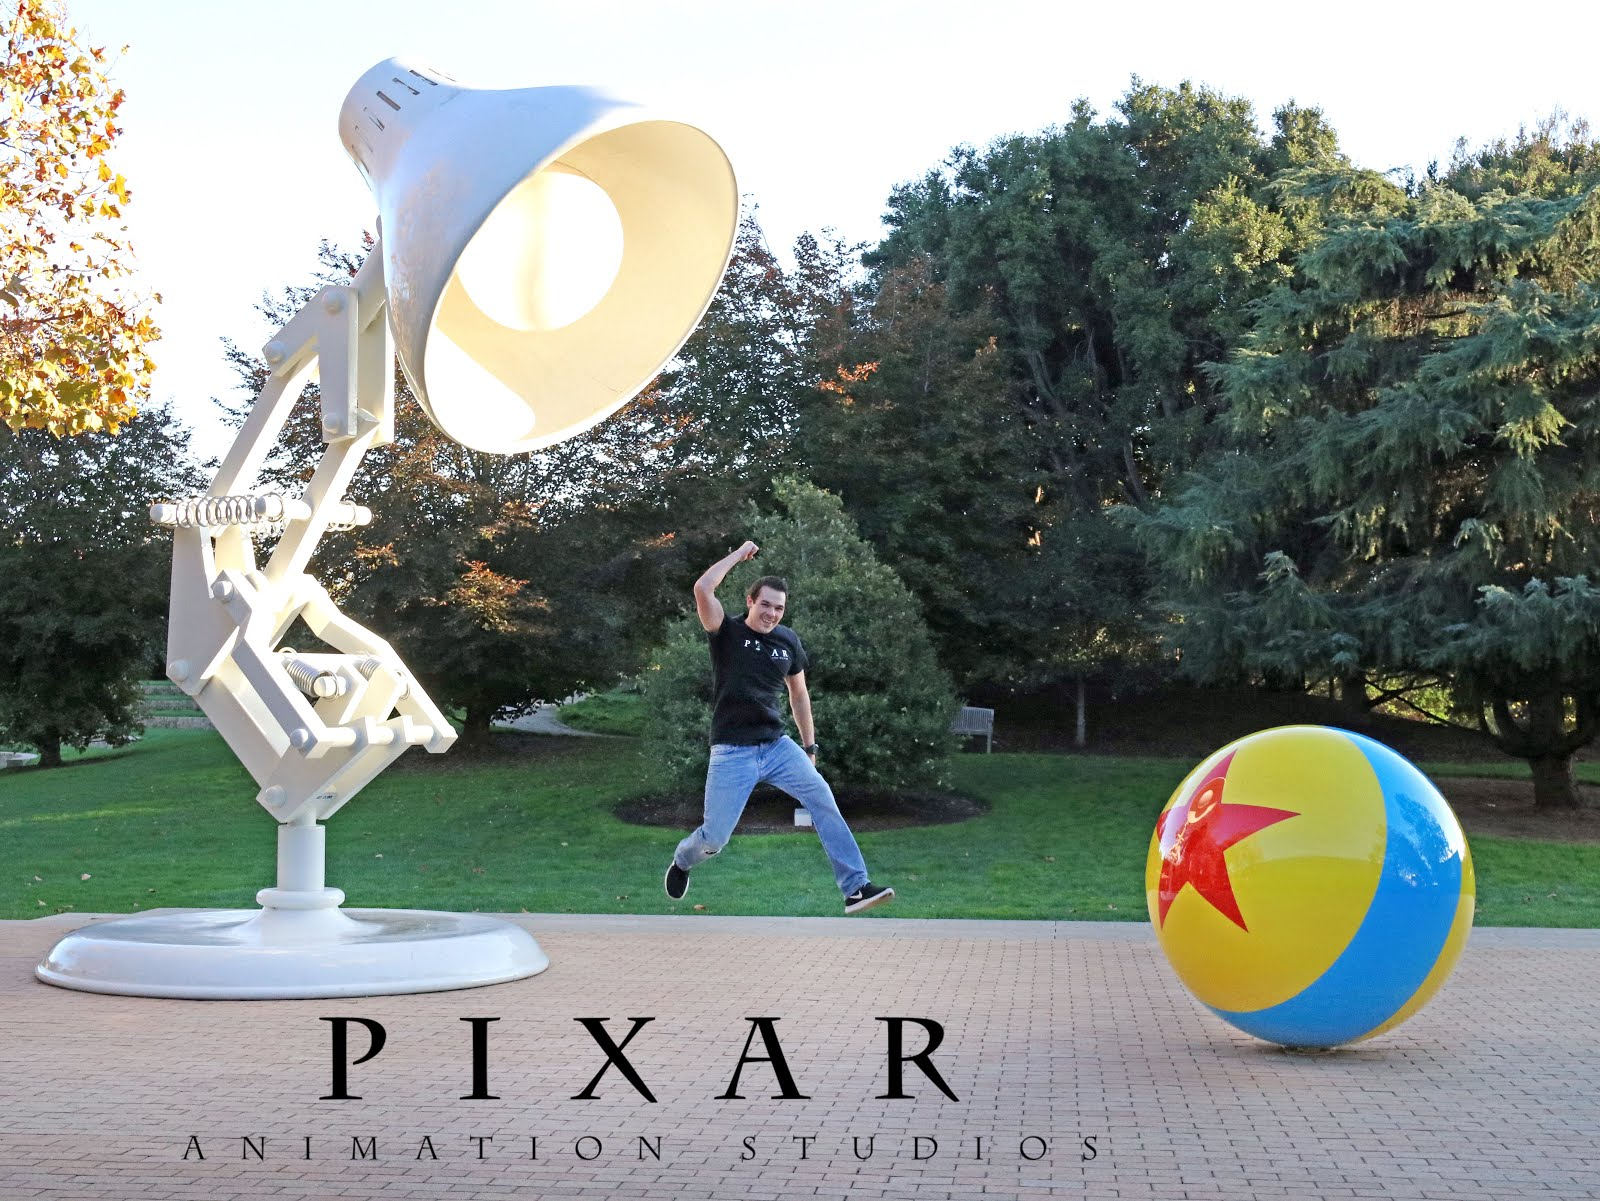 my experience at pixar studios tour